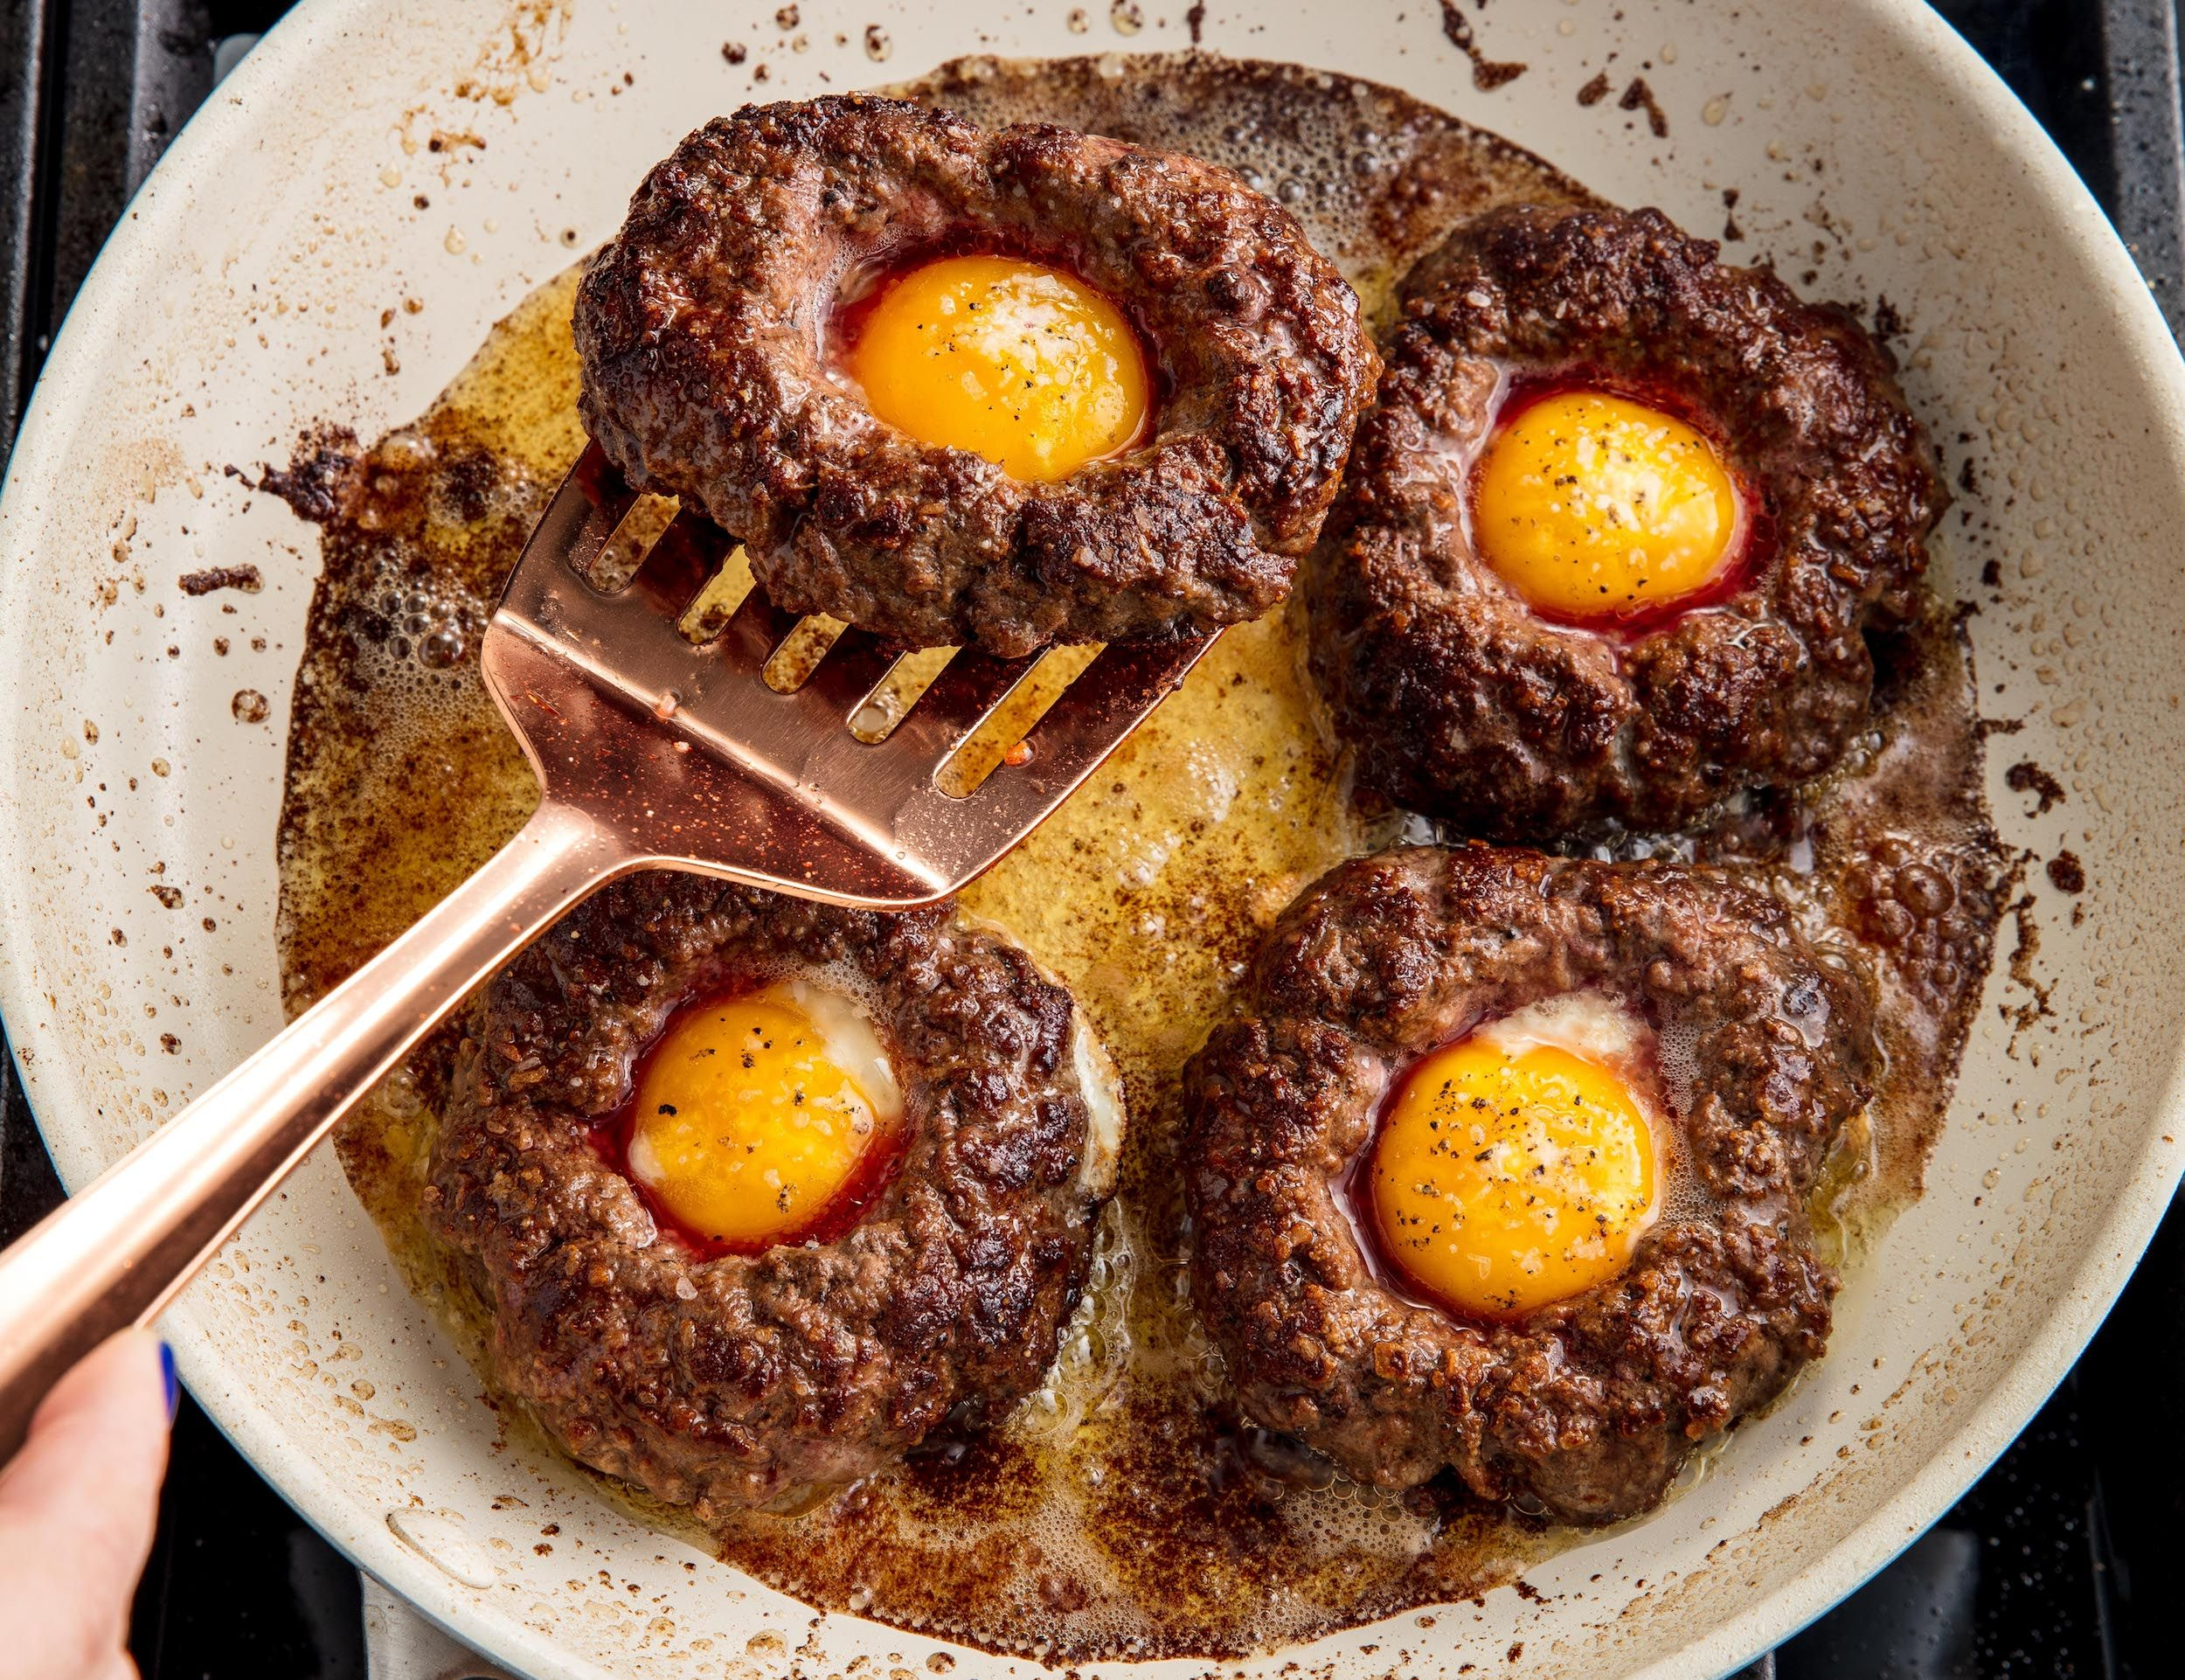 Egg-In-A-Hole Burgers